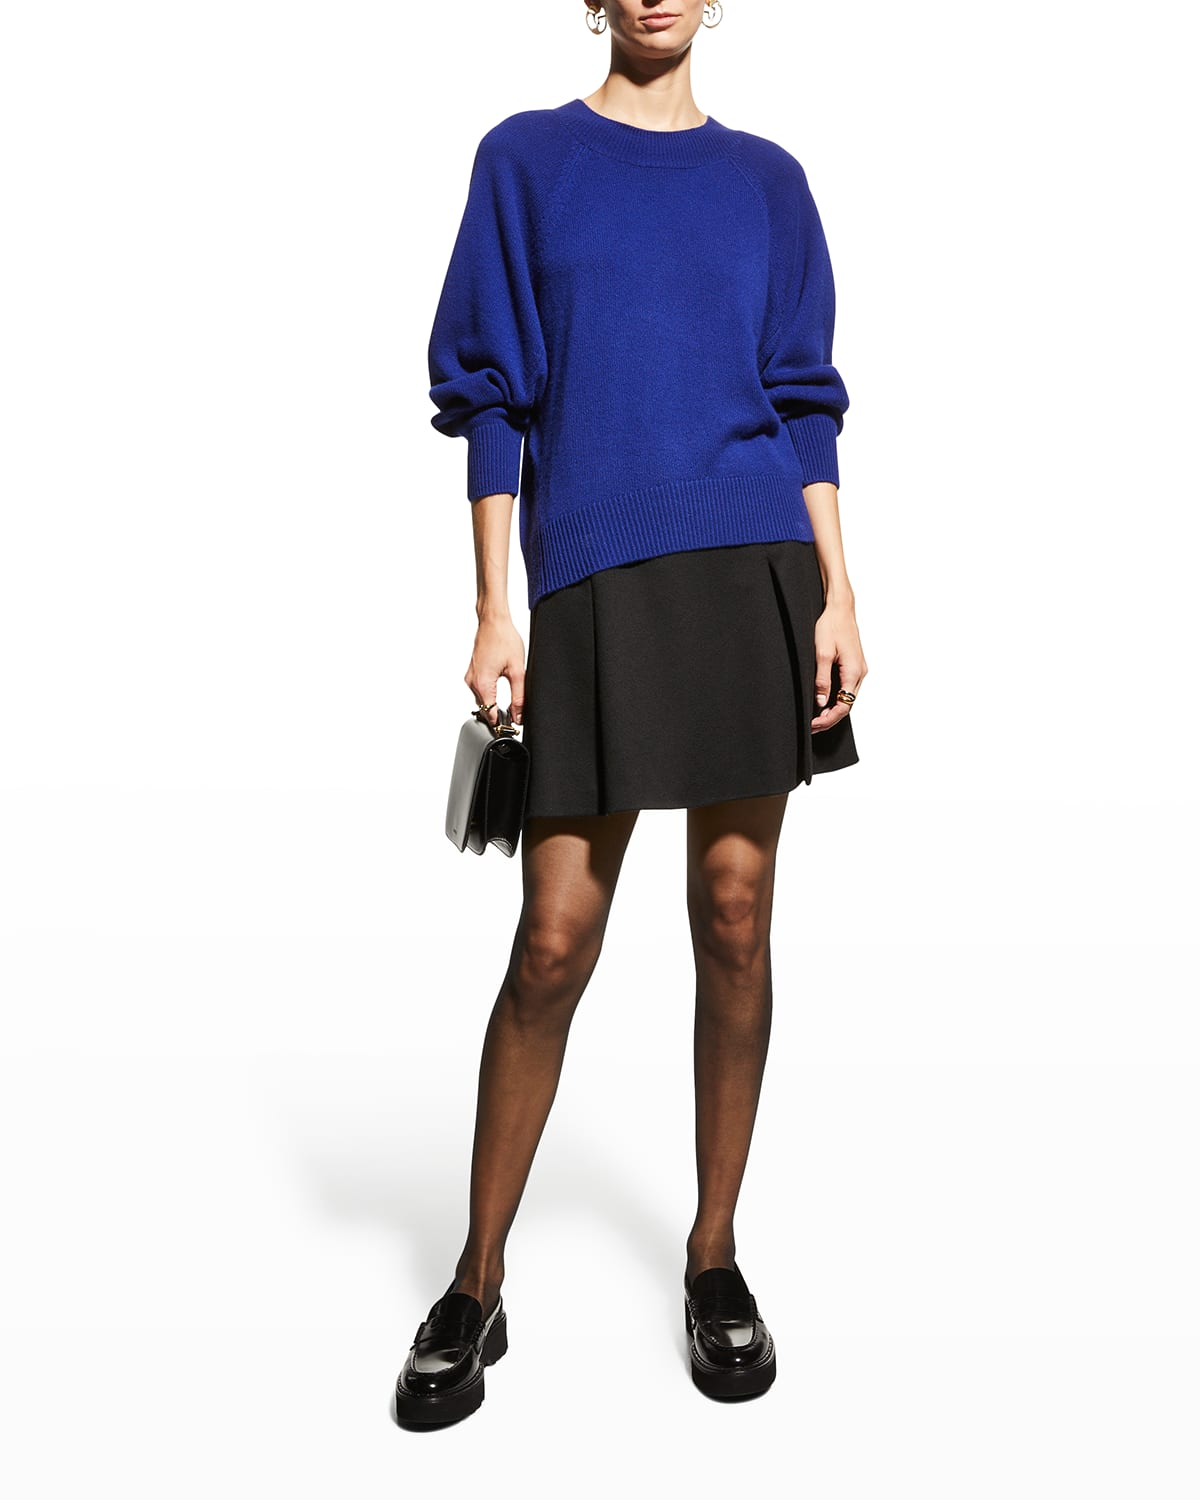 Relaxed Cashmere Crewneck Sweater